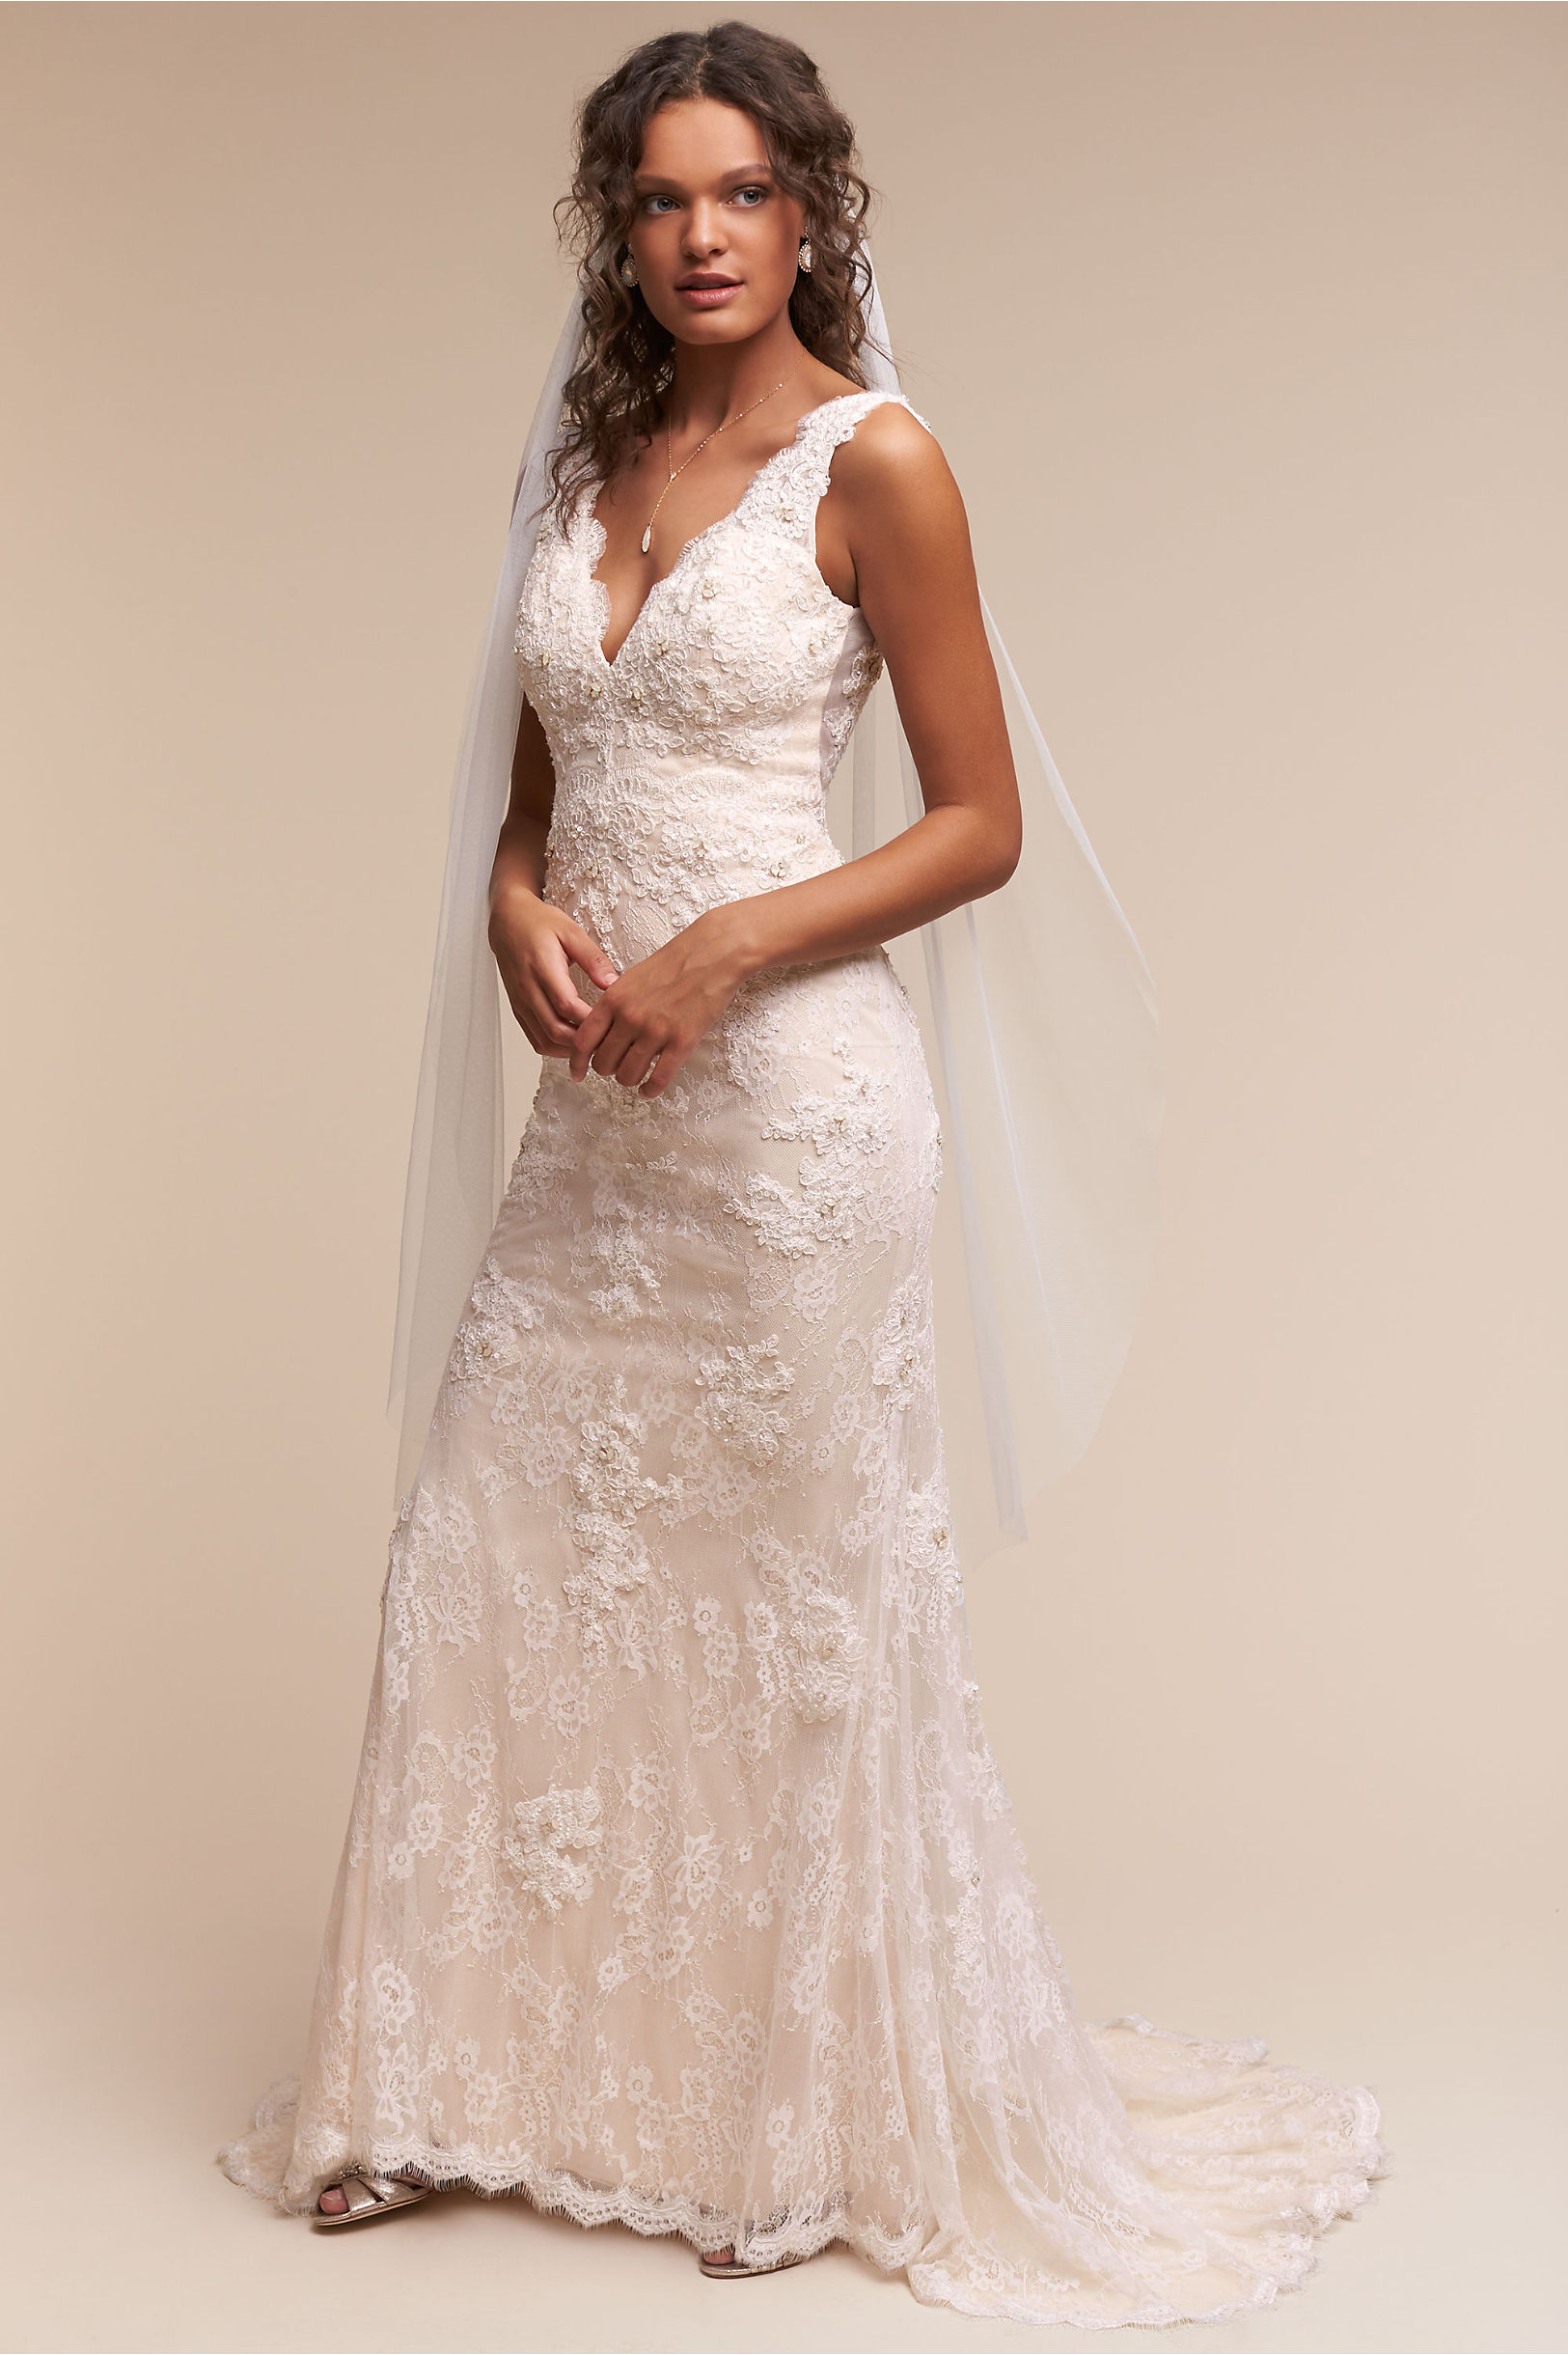 sale wedding dresses pics of wedding dresses Eliana Gown